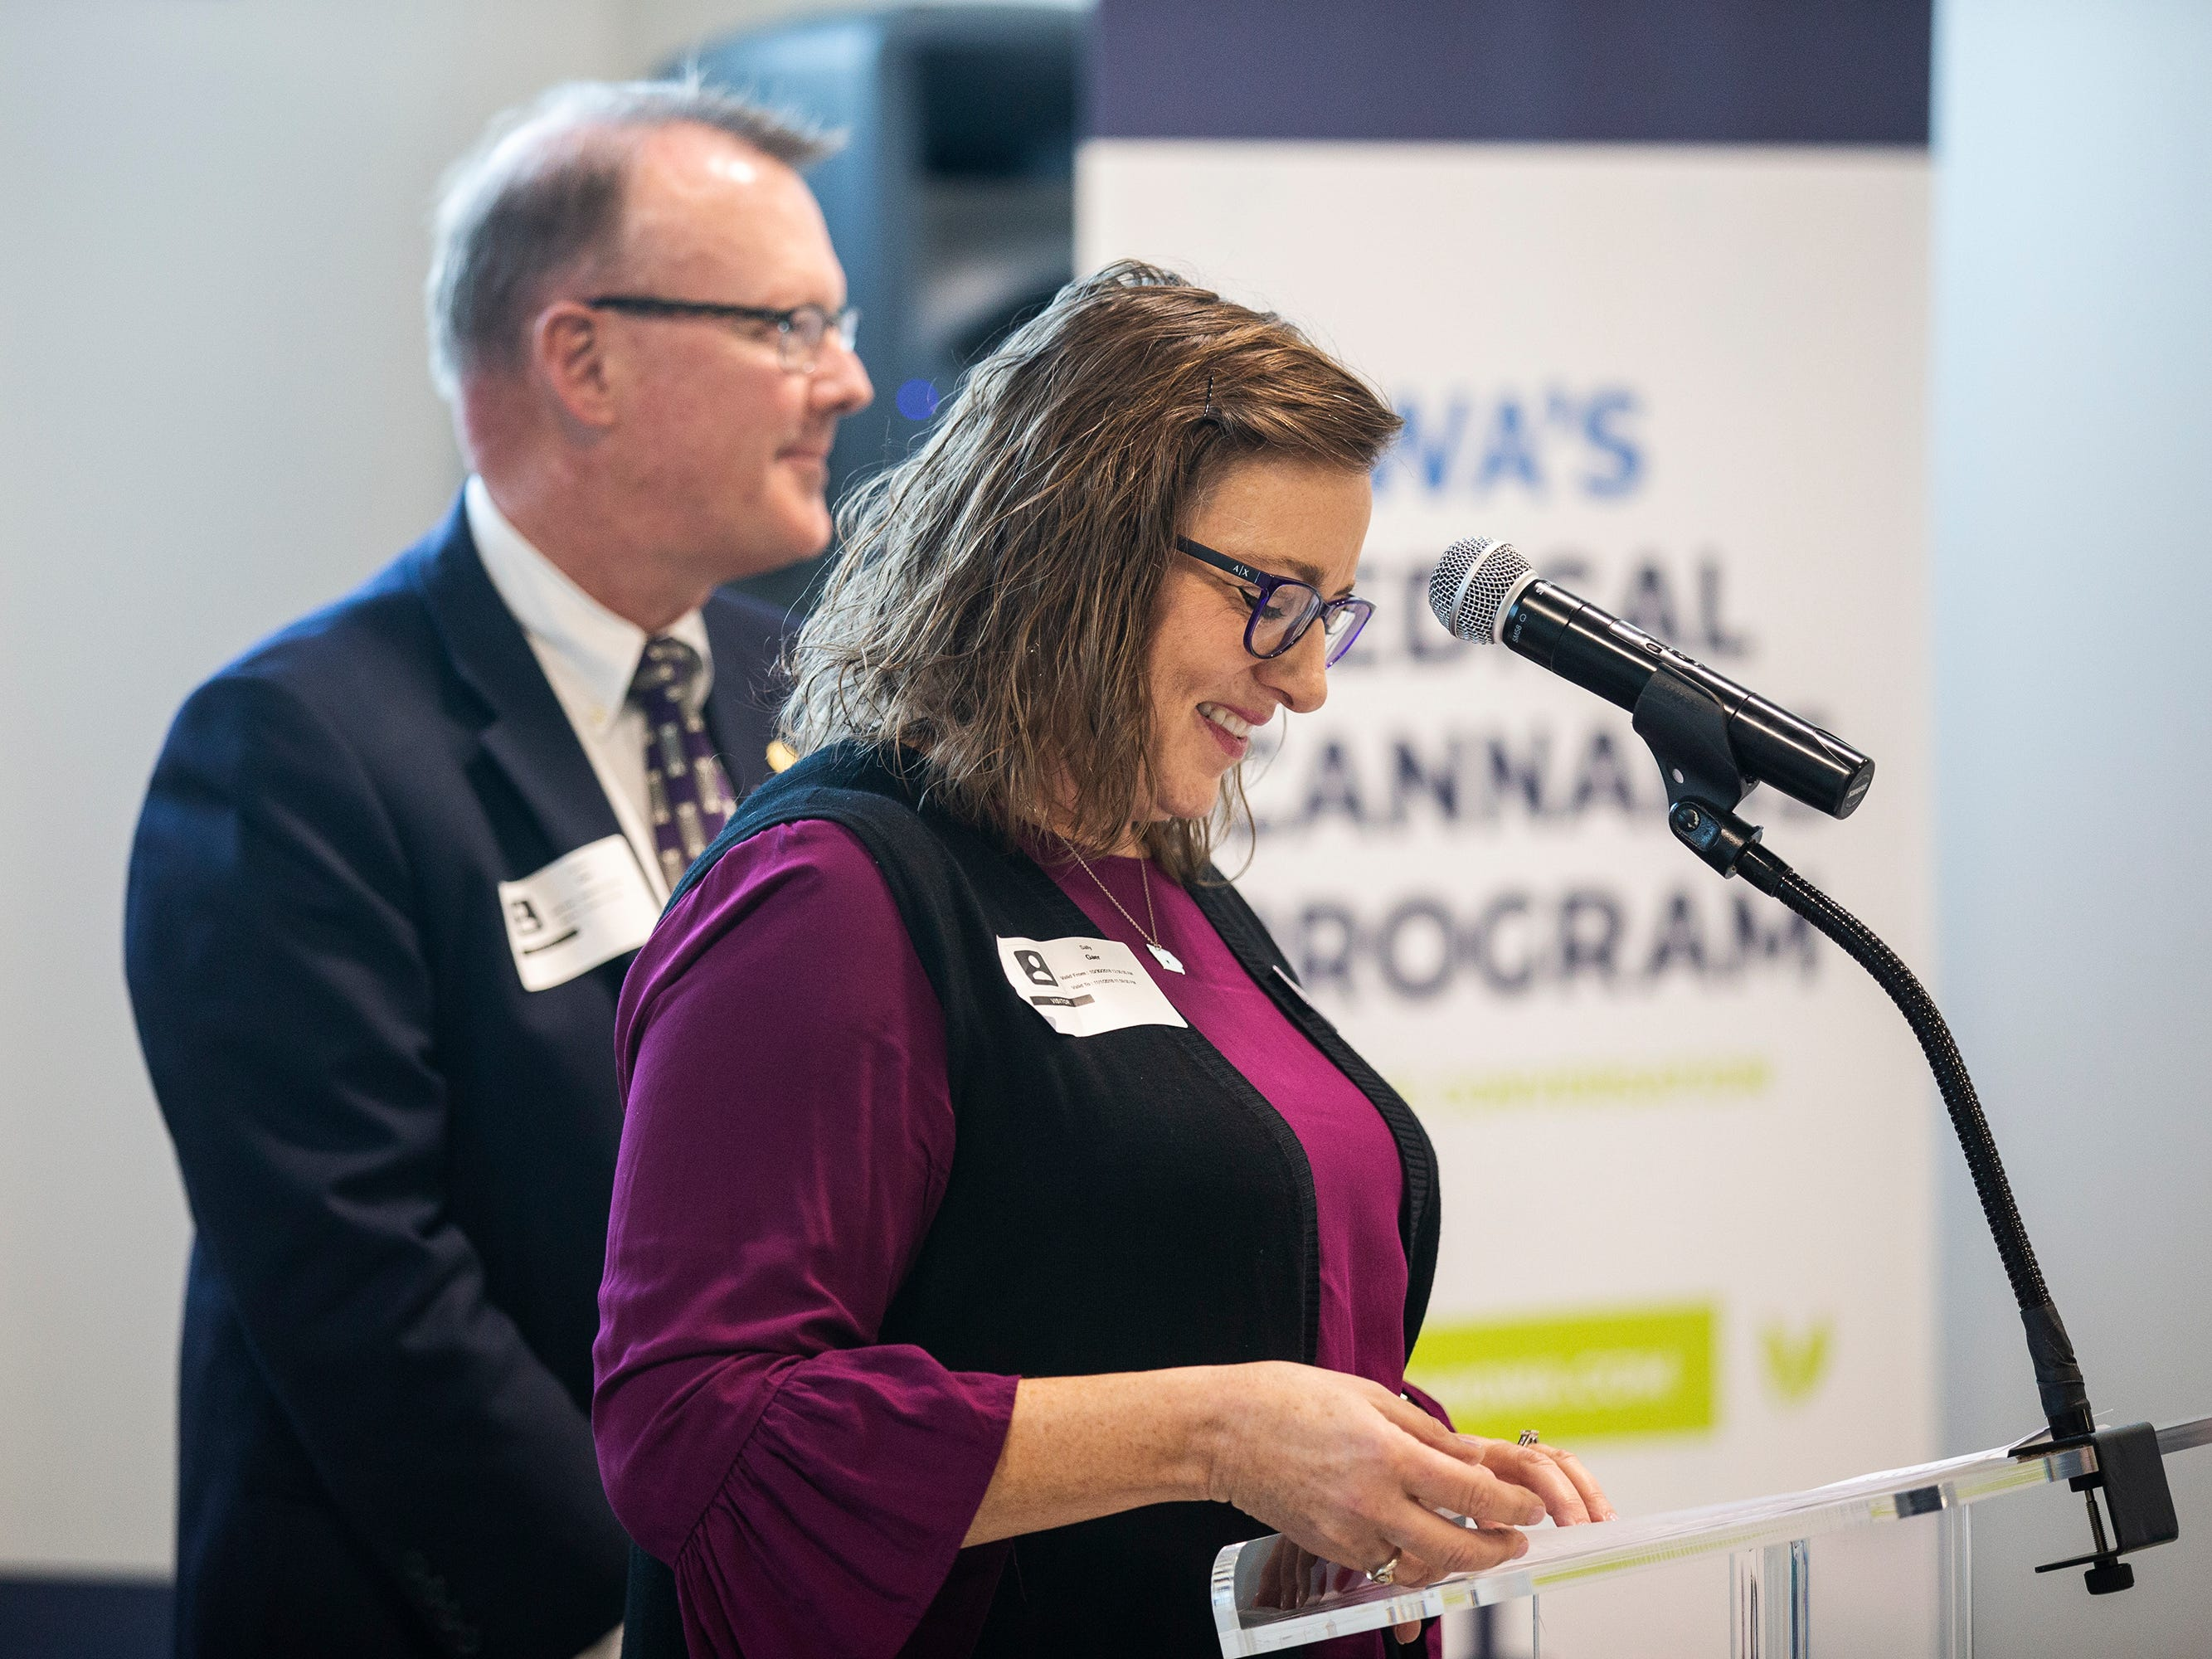 Sally and Steve Gaer, advocates for the use of medical-marijuana, address the crowd during the ribbon cutting of MedPharm Iowa's $10 million medical-marijuana production facility on Thursday, Nov. 1, 2018, in Des Moines.